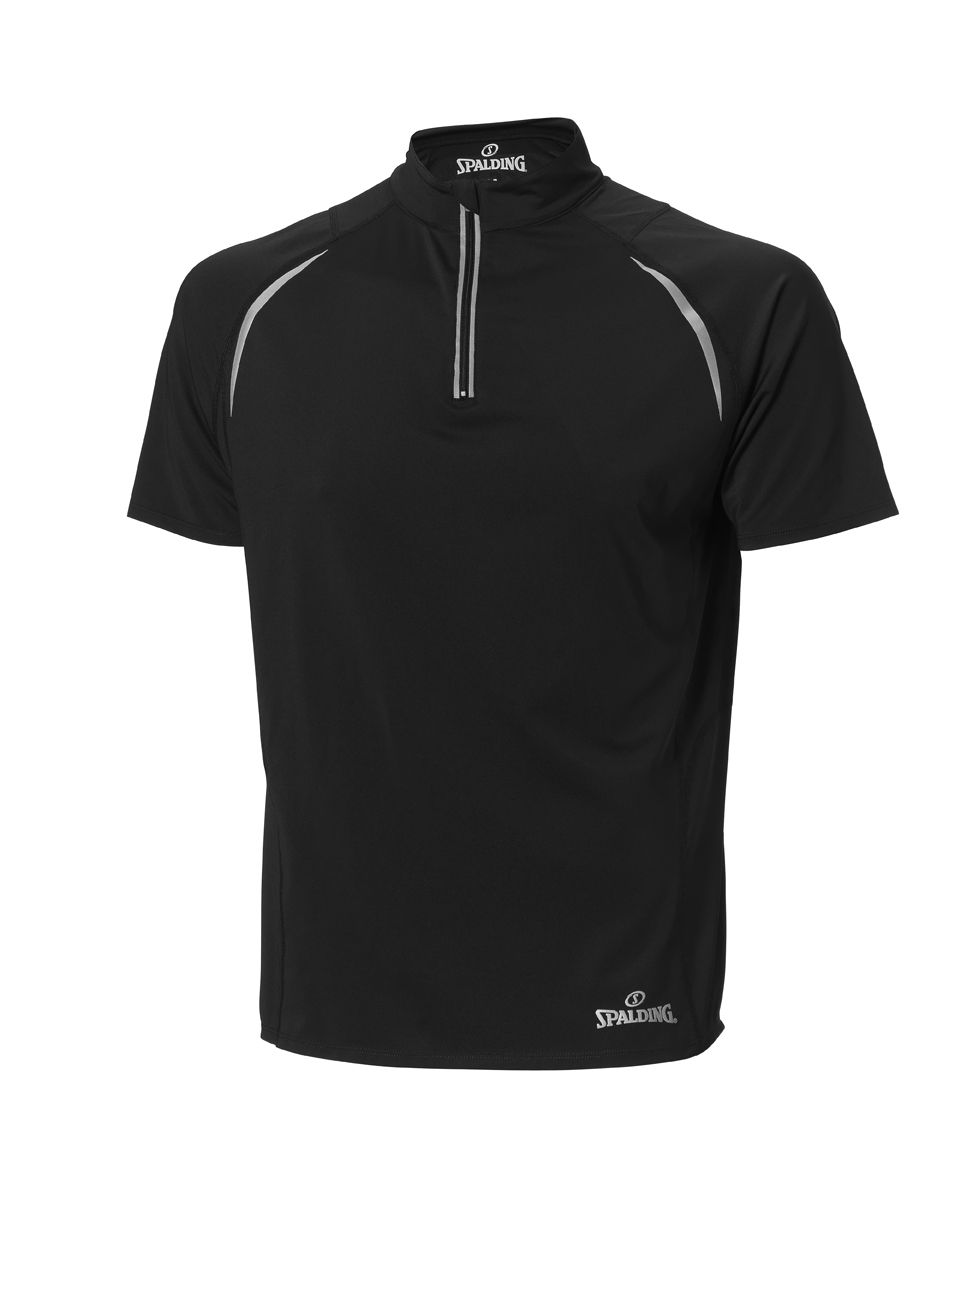 Spalding endurance Heren Zip Top Zwart